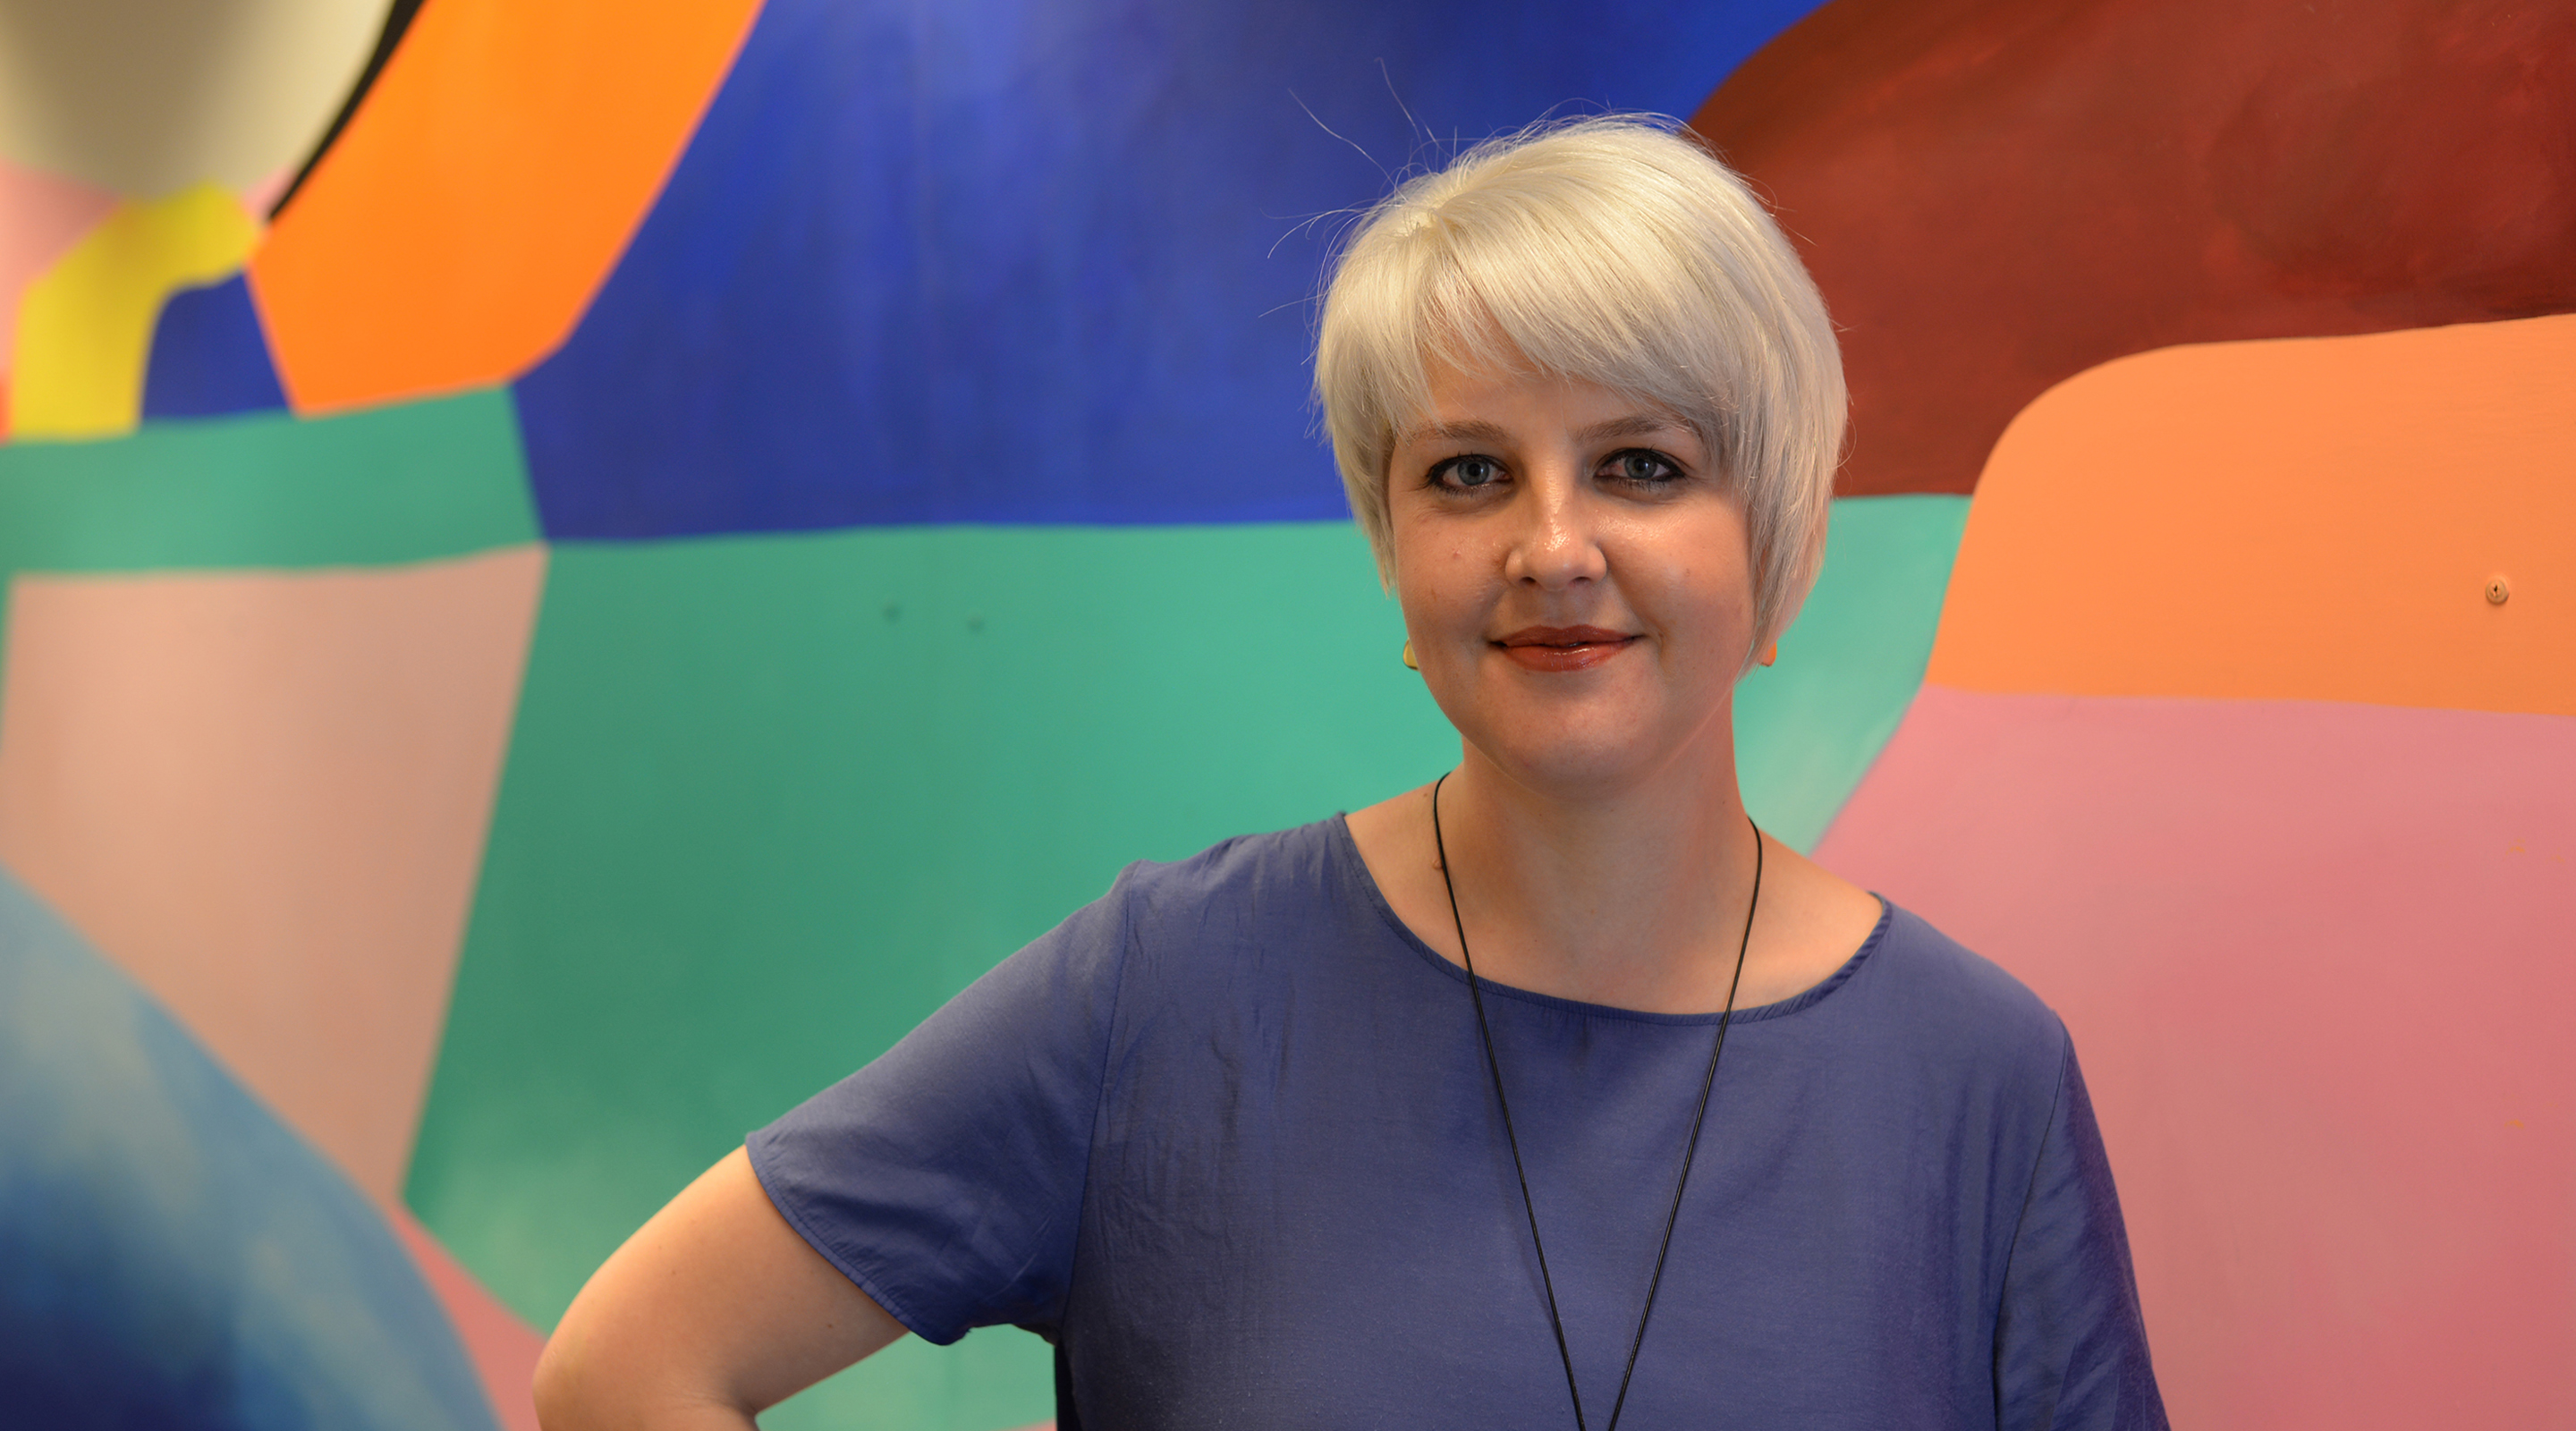 Dr Madeline Shanahan in front of a colourful wall